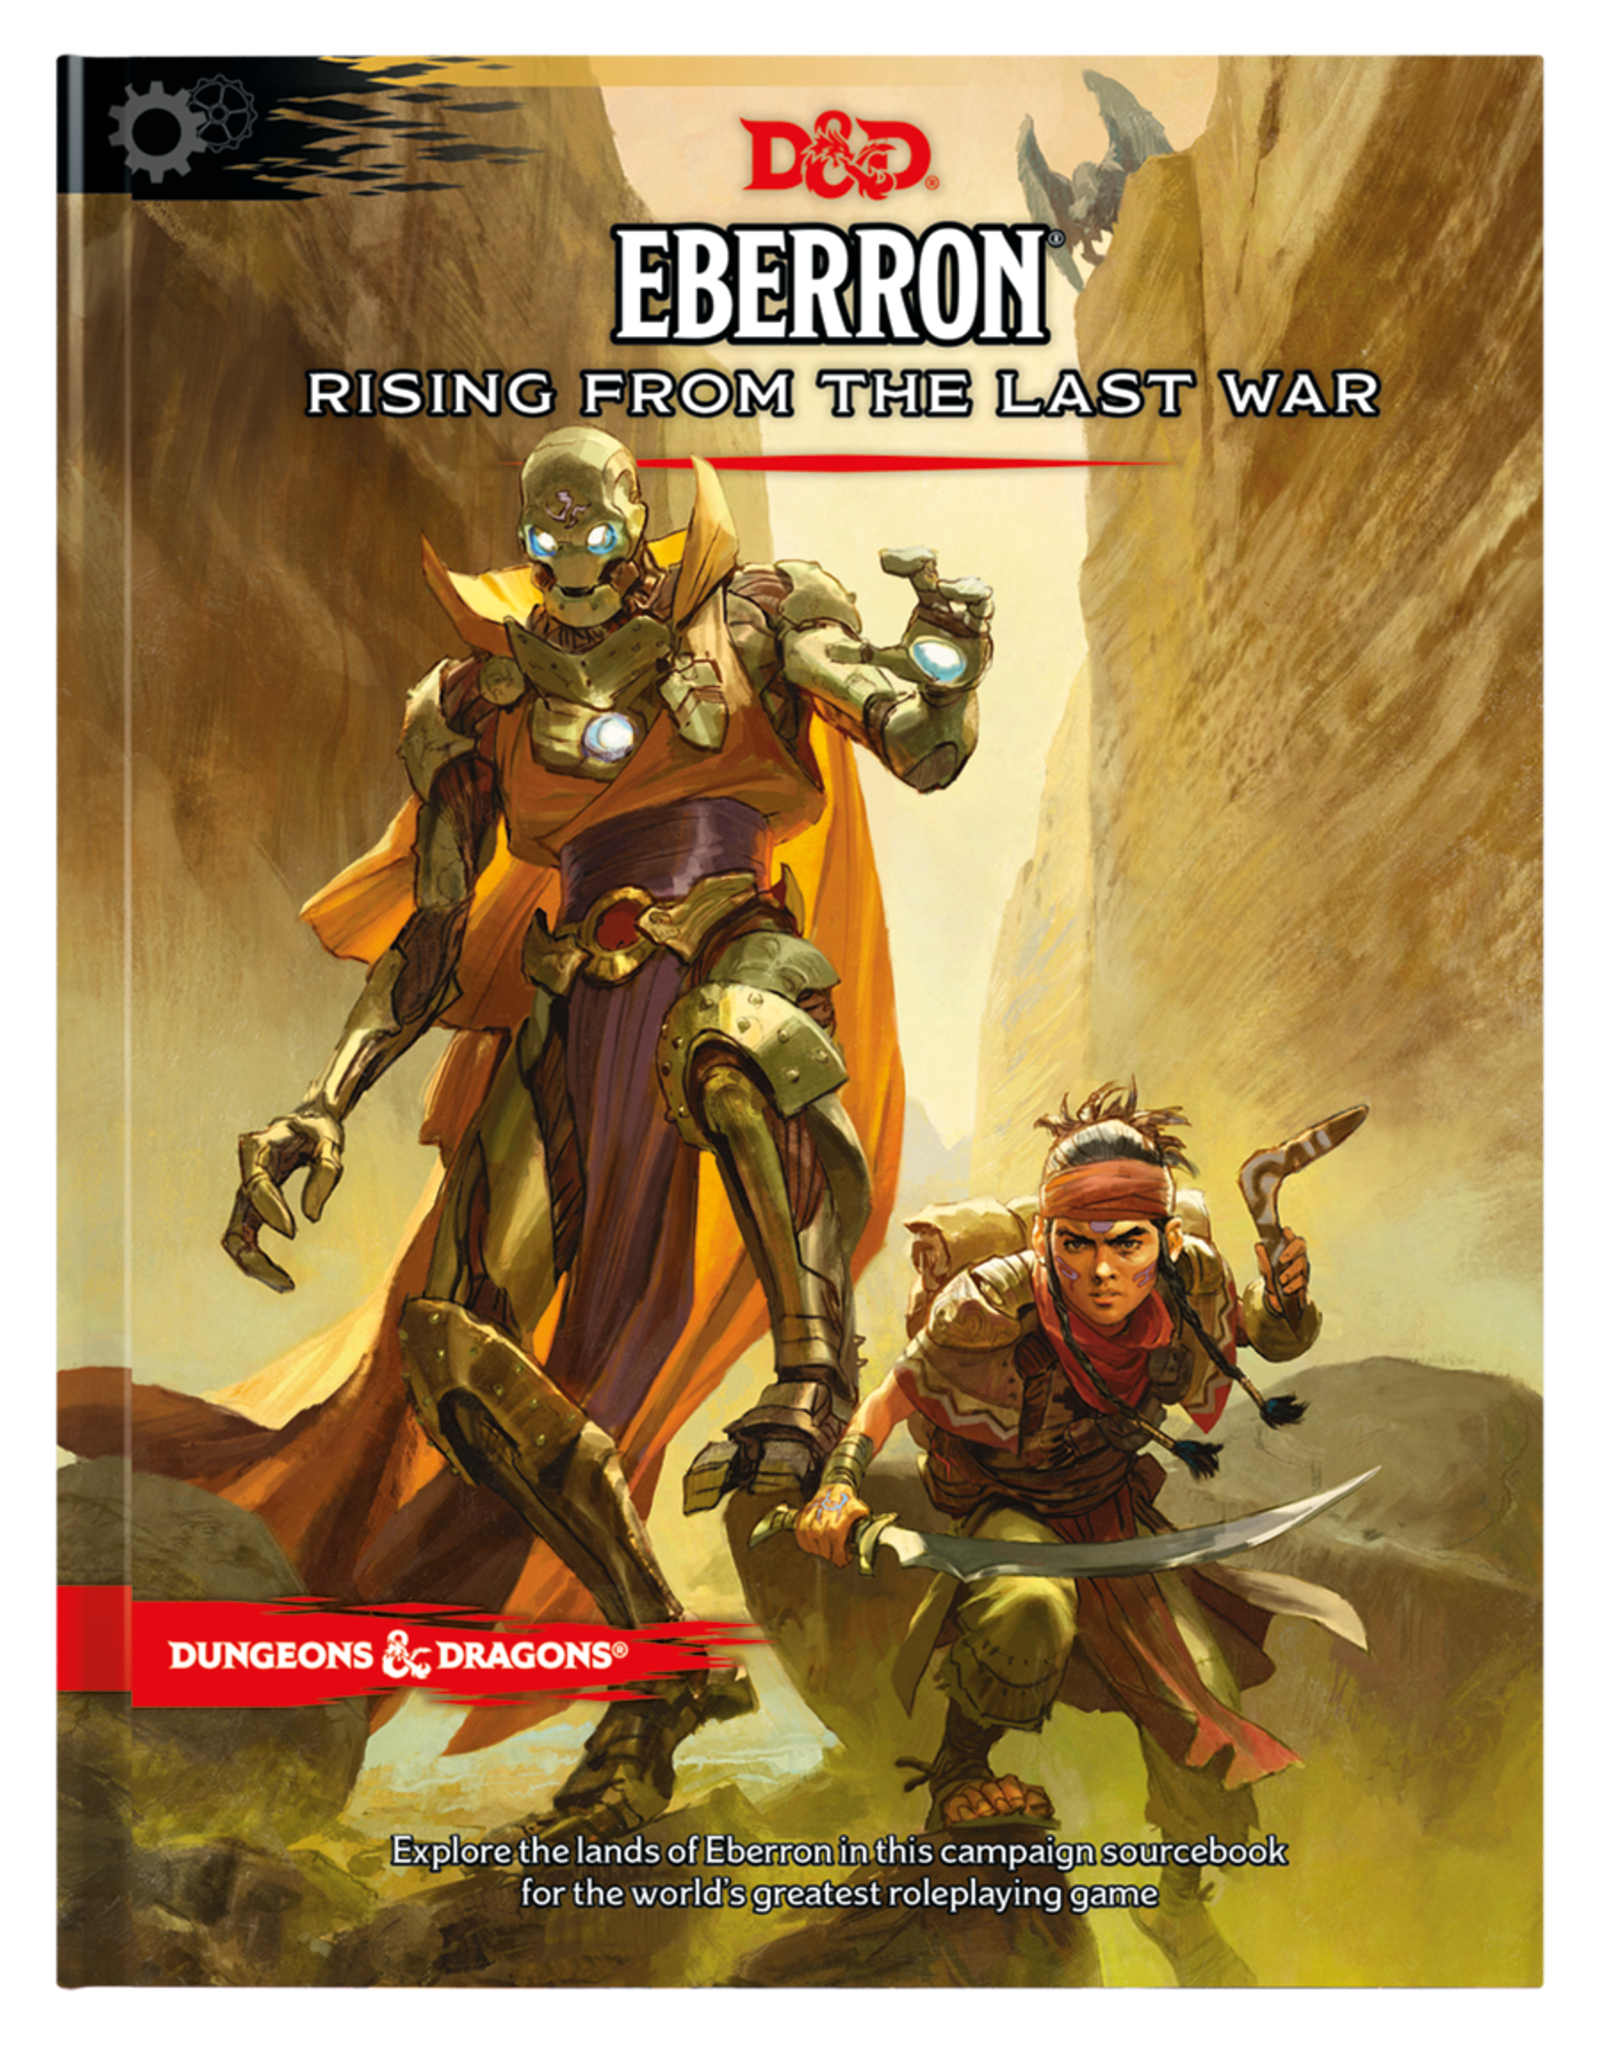 Wizards of the Coast Dungeons & Dragons Eberron Rising from the Last War